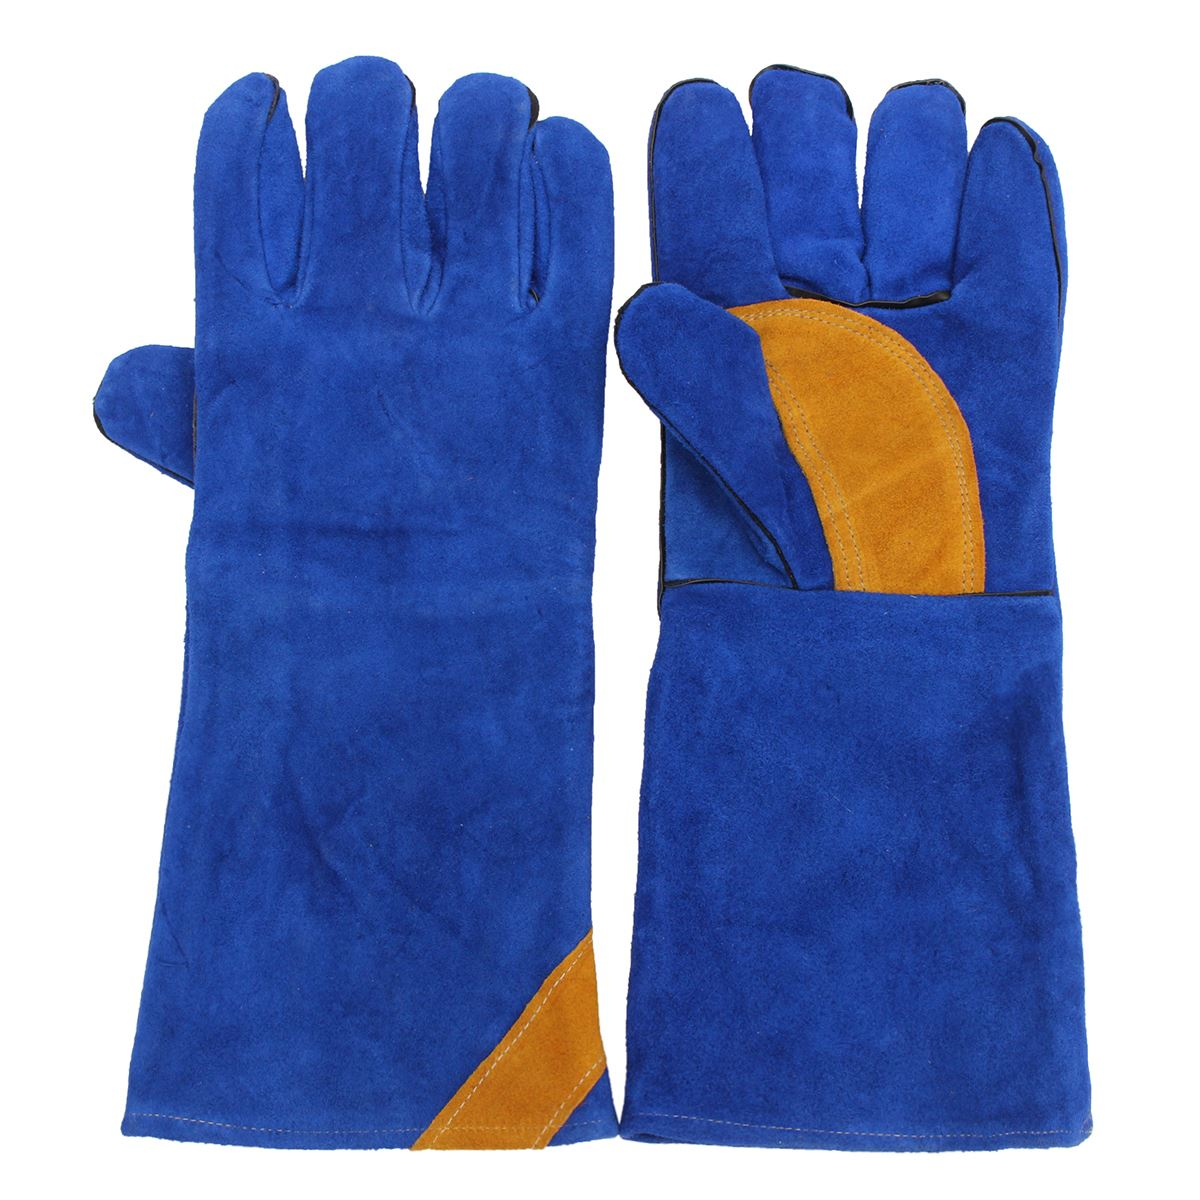 16'' Pair Long Heavy Duty Double Reinforced  Welding Gauntlets Welder Gloves Safety Gloves manitobah рукавицы fur gauntlets